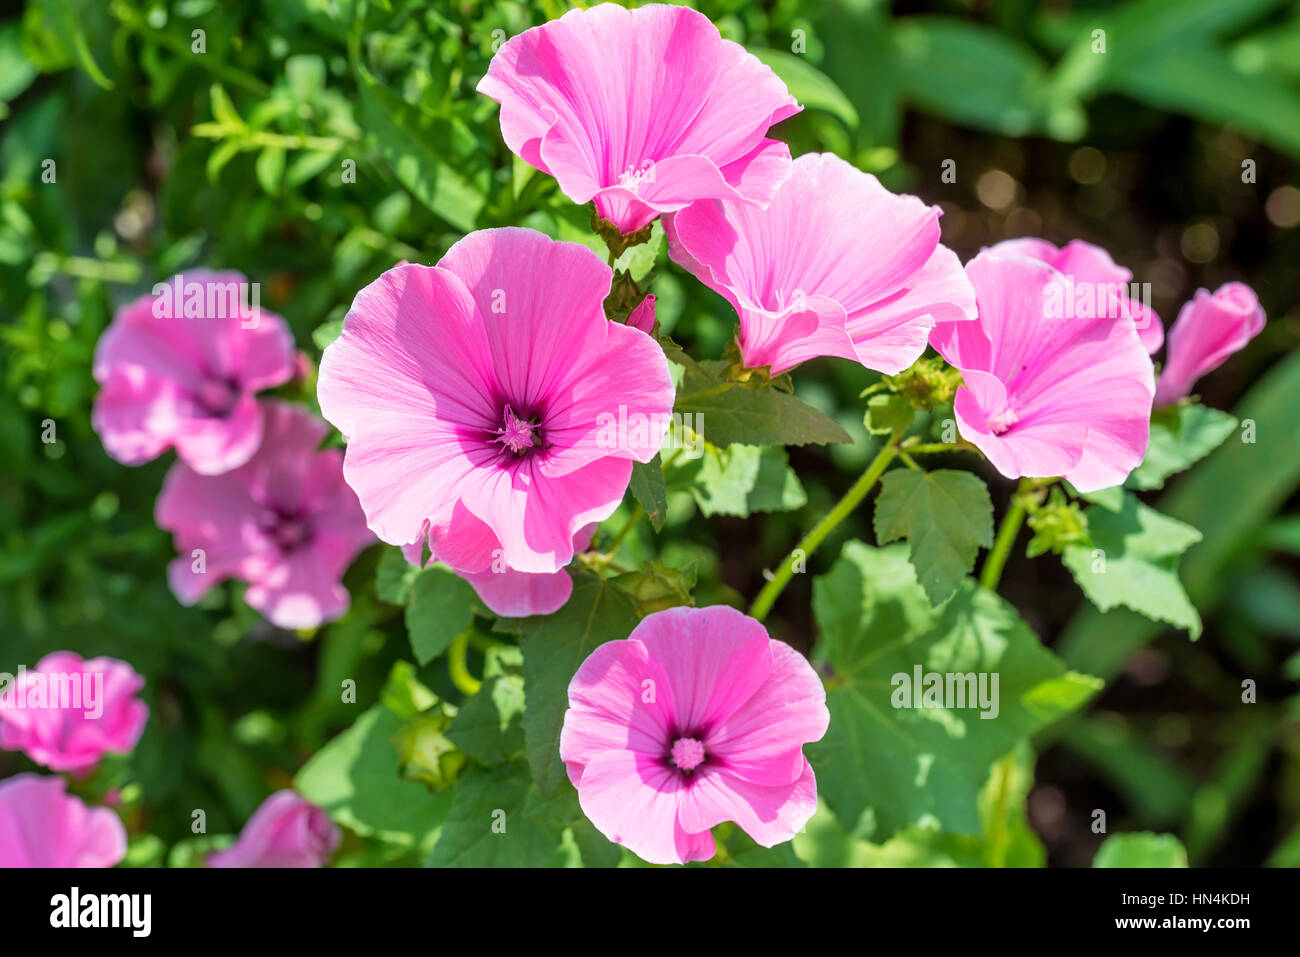 Pink Mallow Or Malva Flowers In The Home Garden